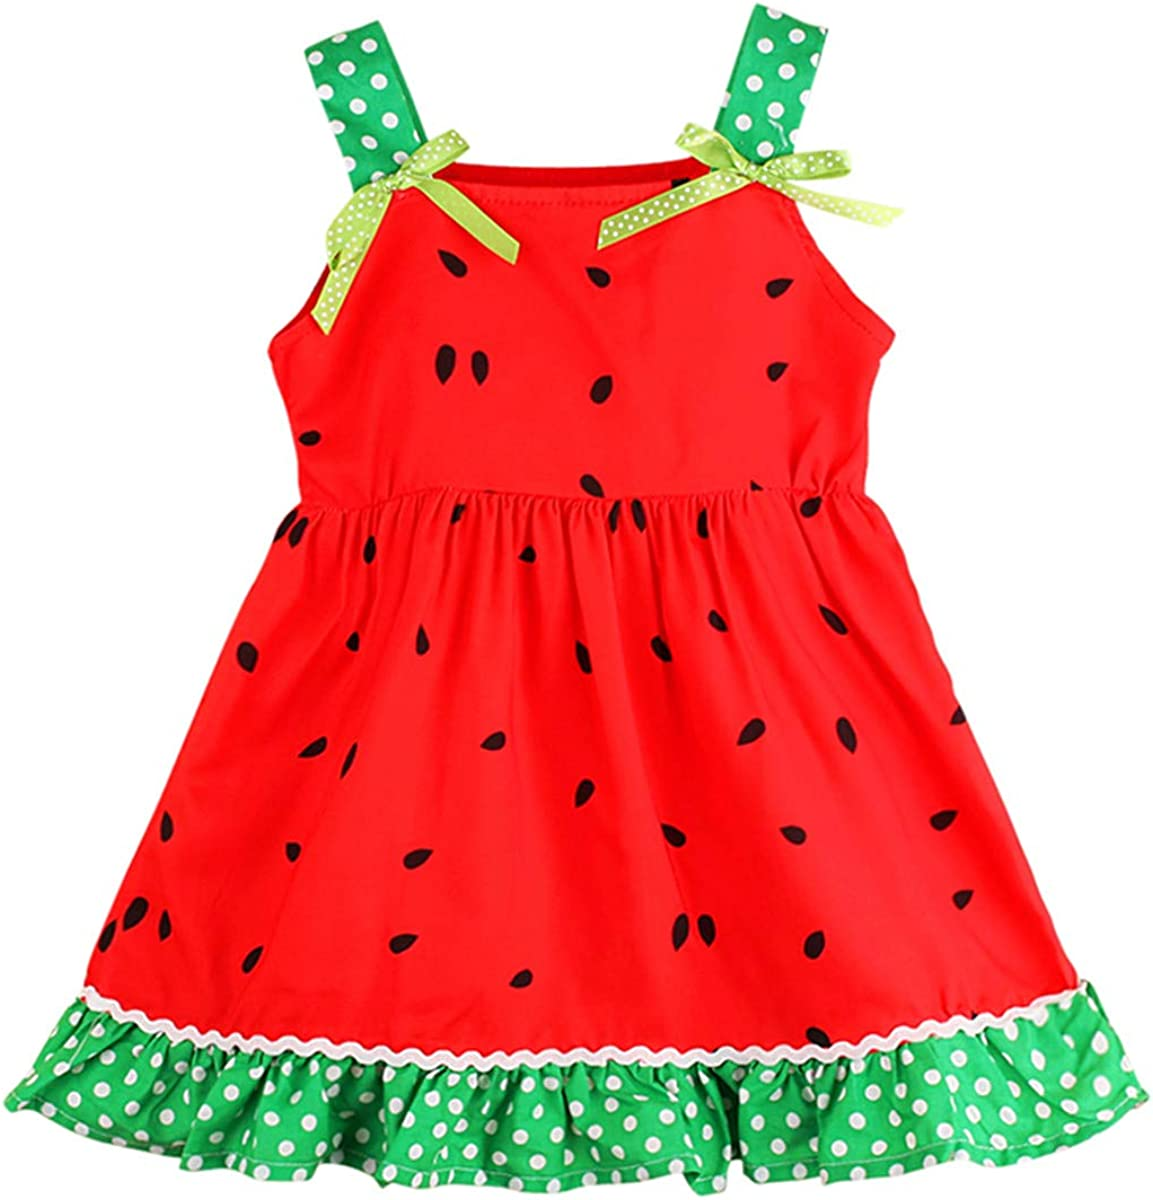 Baby Animer and price Fees free!! revision Girl Summer Dress One Watermelon Piece High Wais Sleeveless